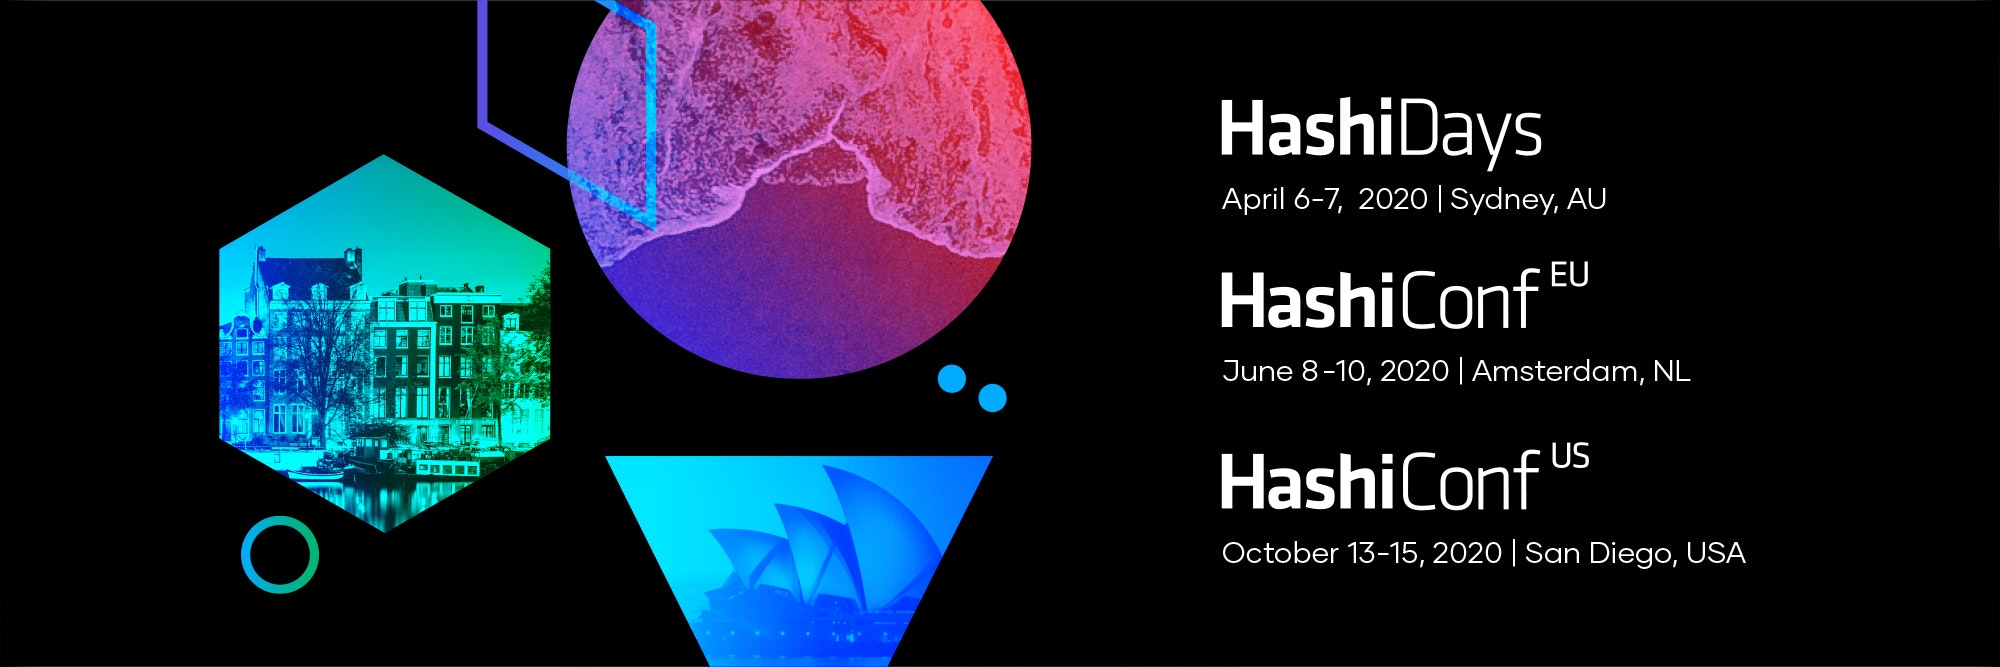 San Diego, Amsterdam, and Sydney - HashiCorp community conferences are going global